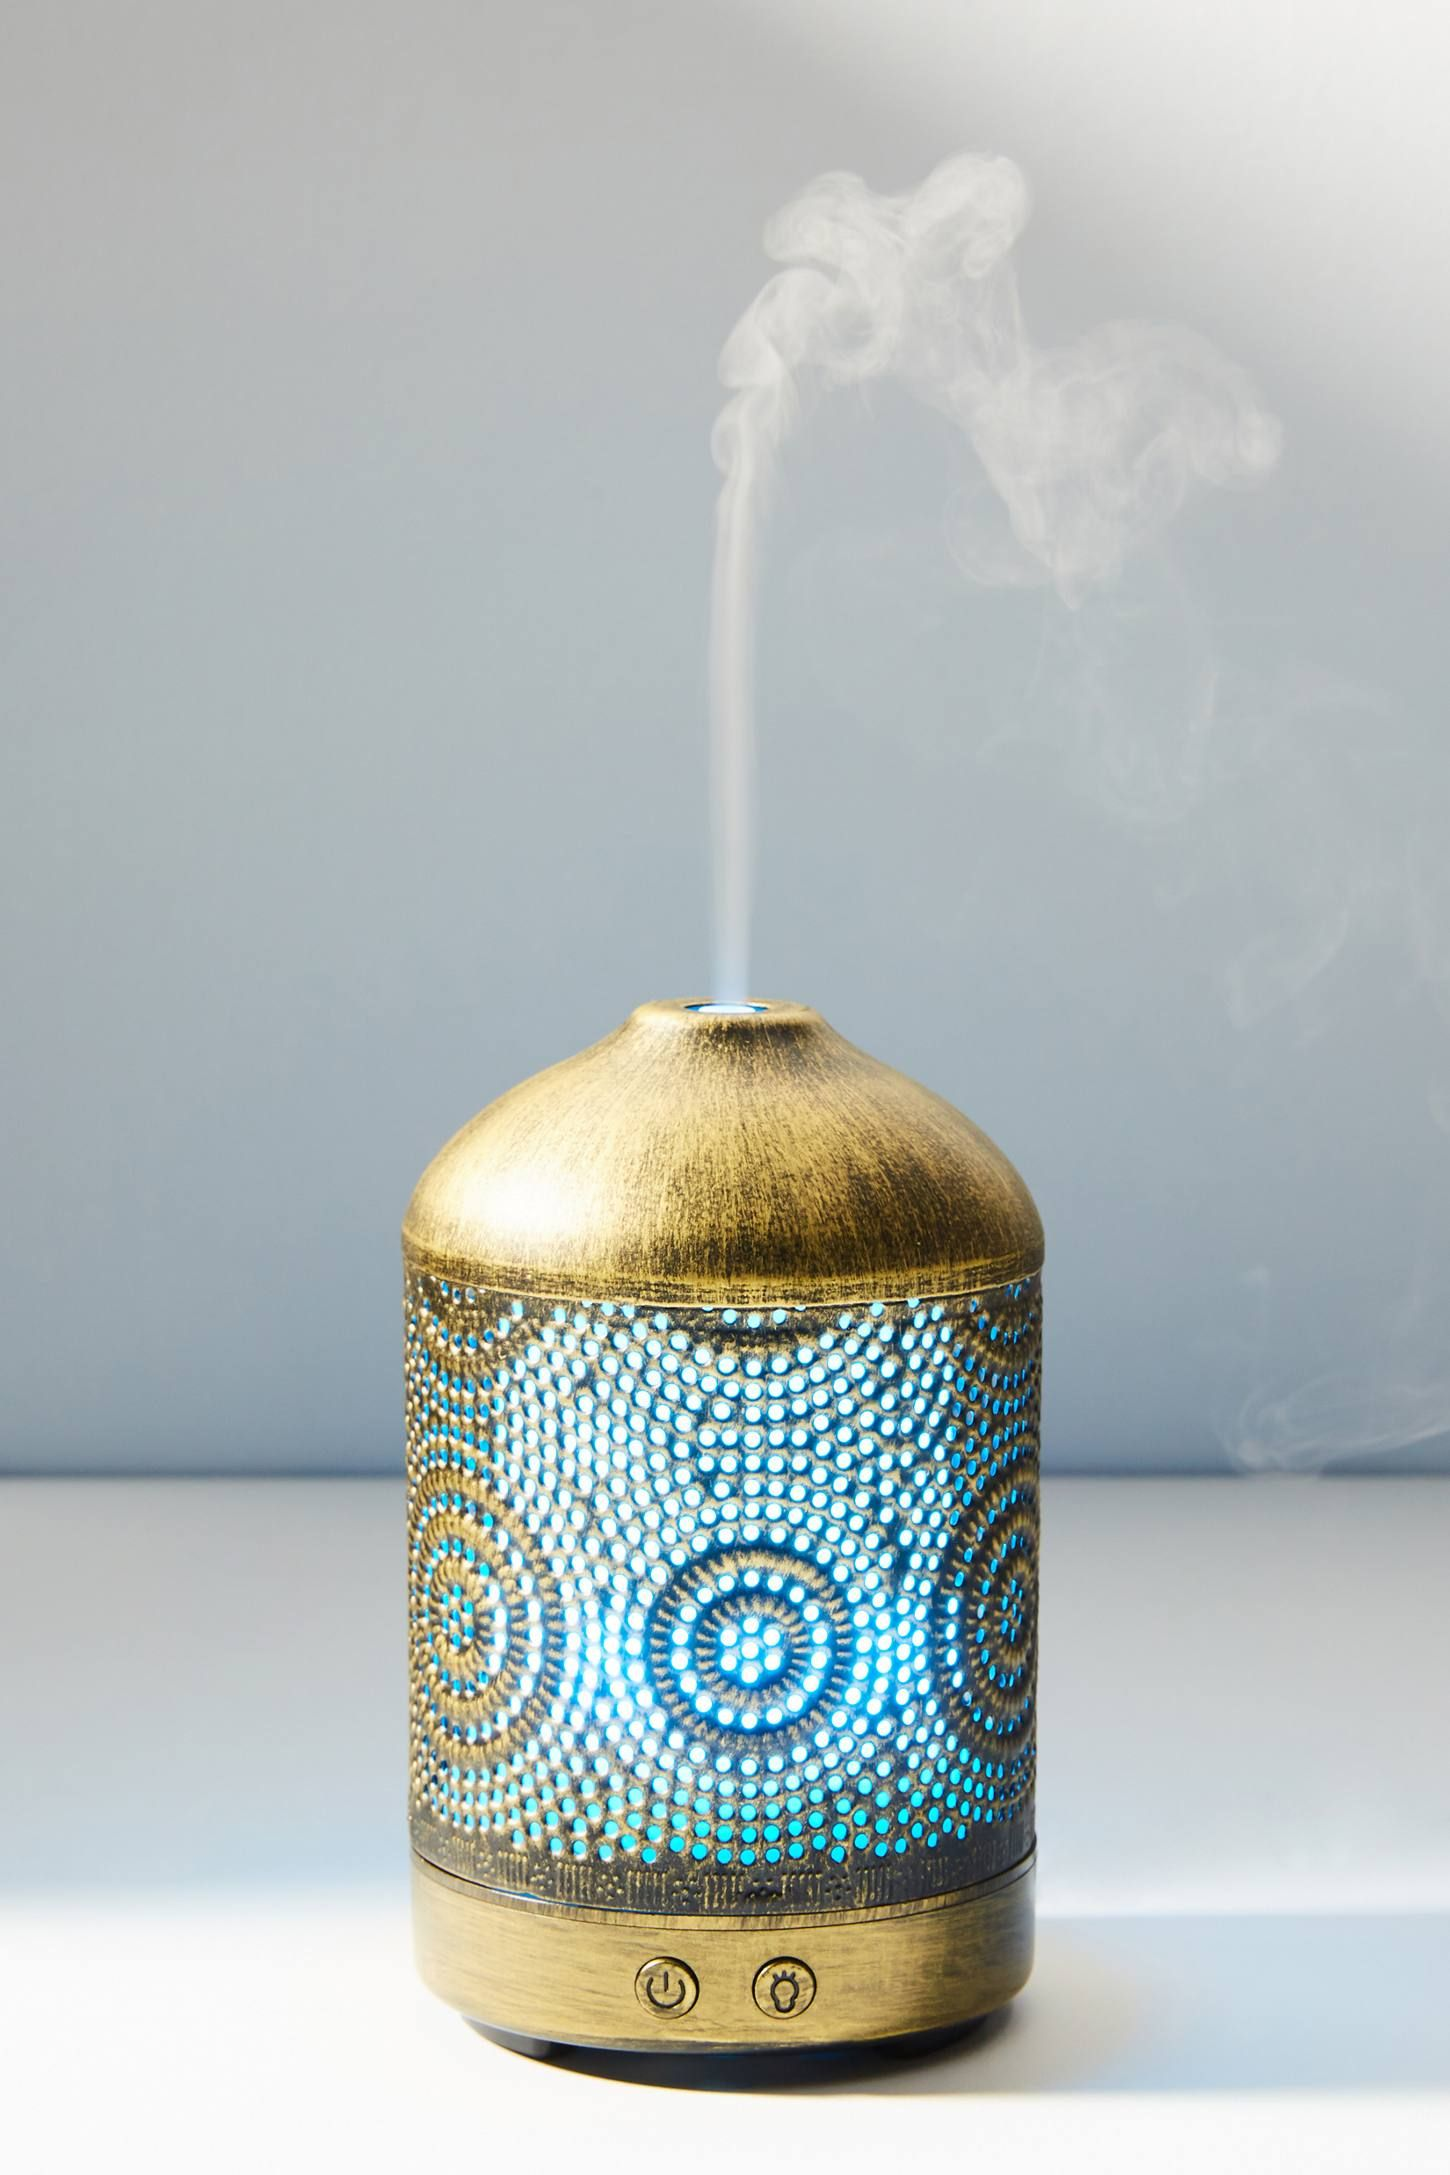 The 19 Best Essential Oil Diffusers Of 2021 For Aromatherapy